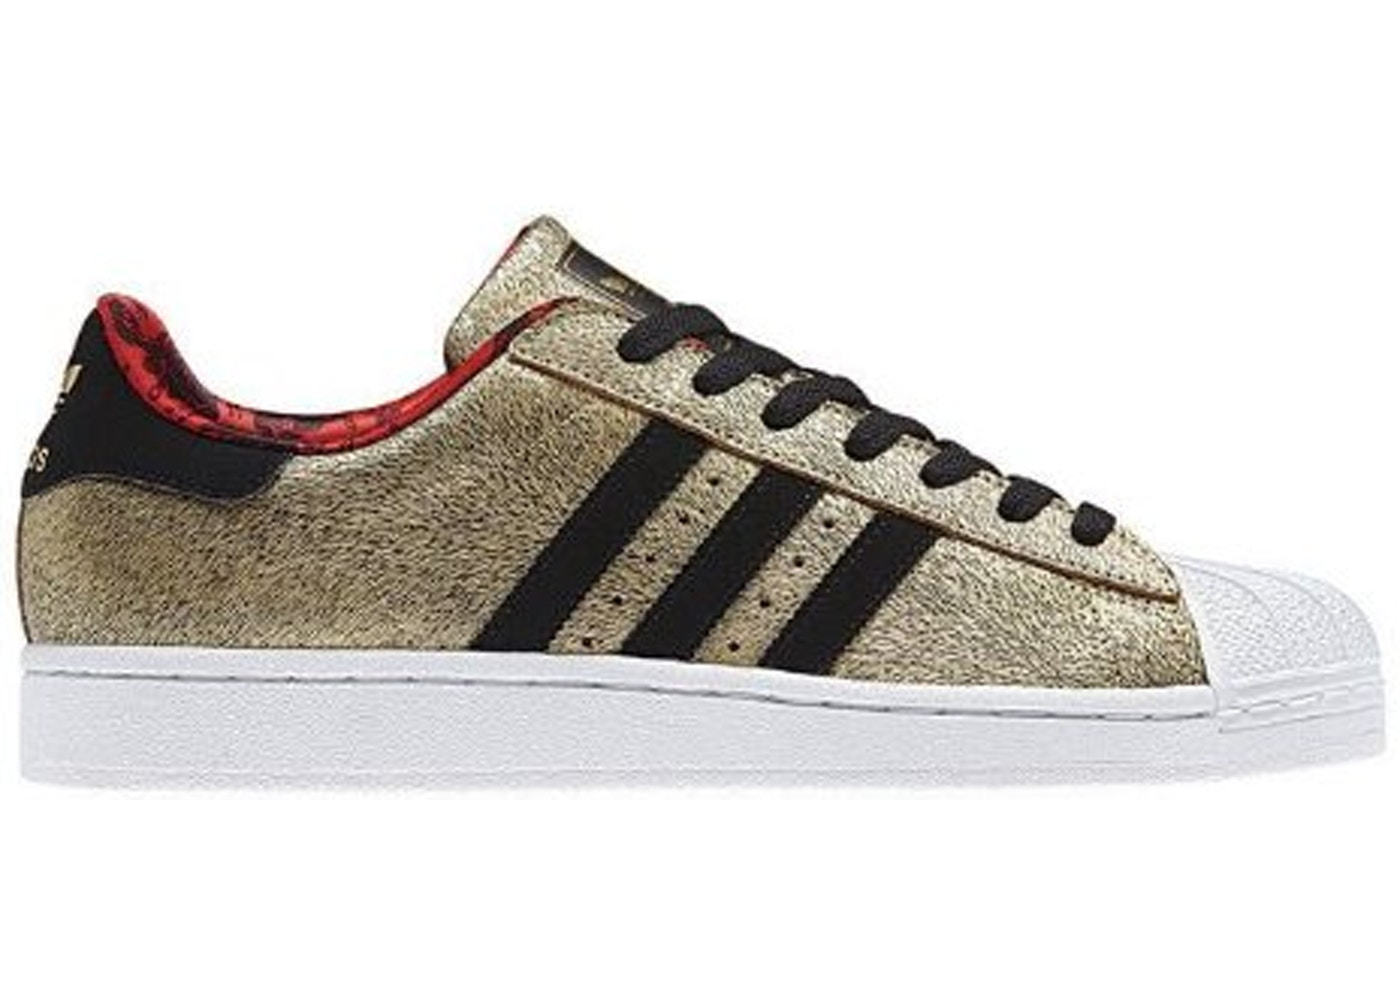 innovative design 77fc5 03411 adidas Superstar 2 Year of the Horse